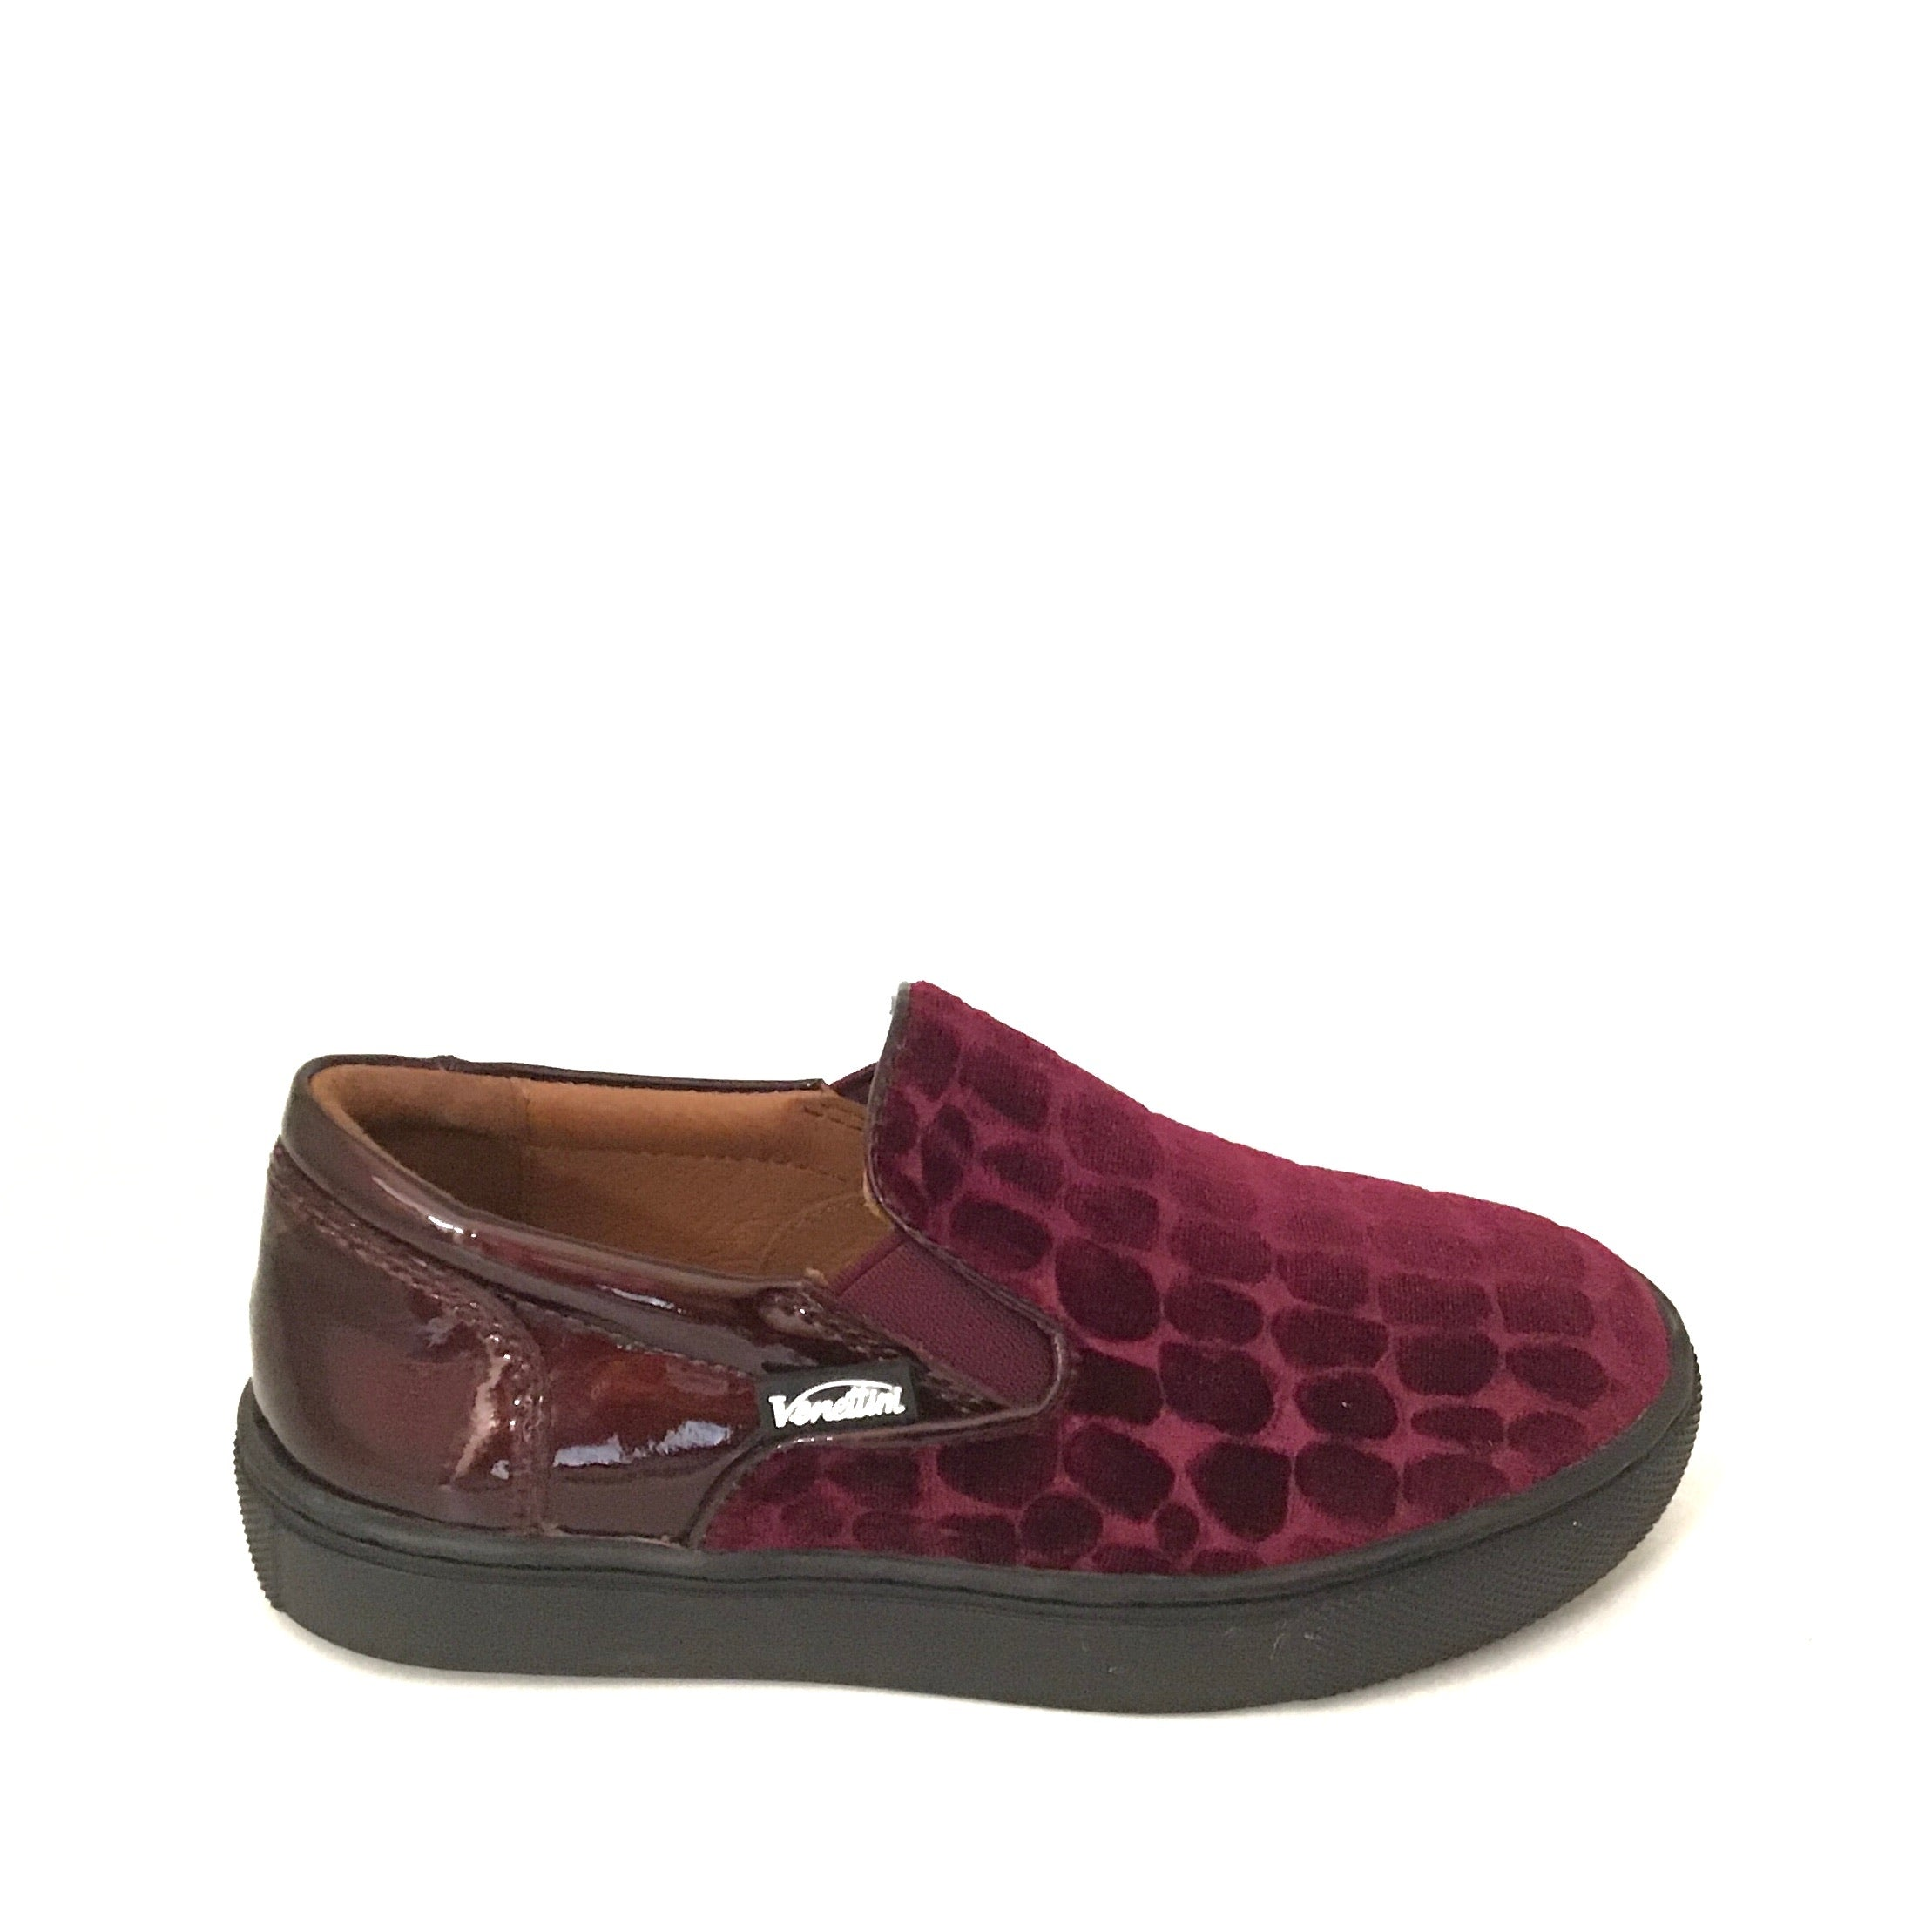 Venettini Stone Textured Bordeaux Velvet Slip On